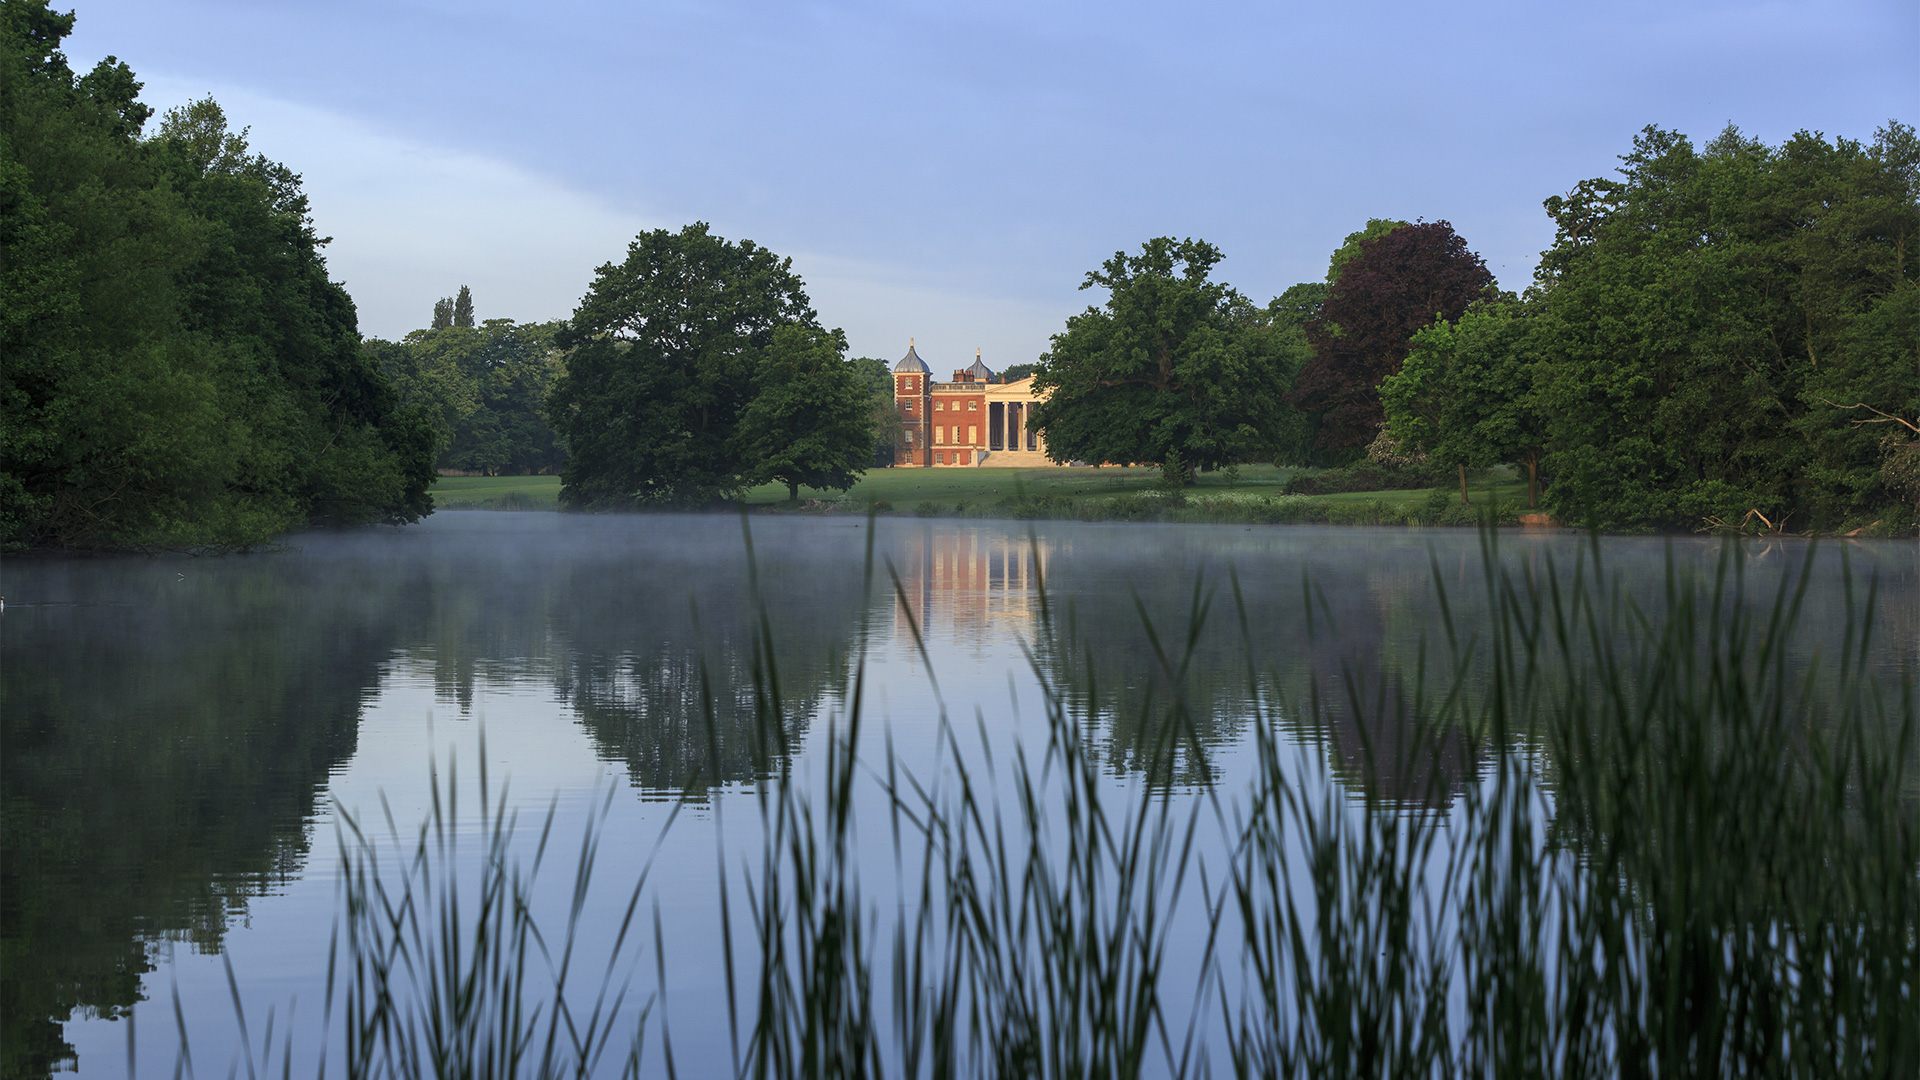 A view through the reeds across a lake to Osterley Park and House in the distance.